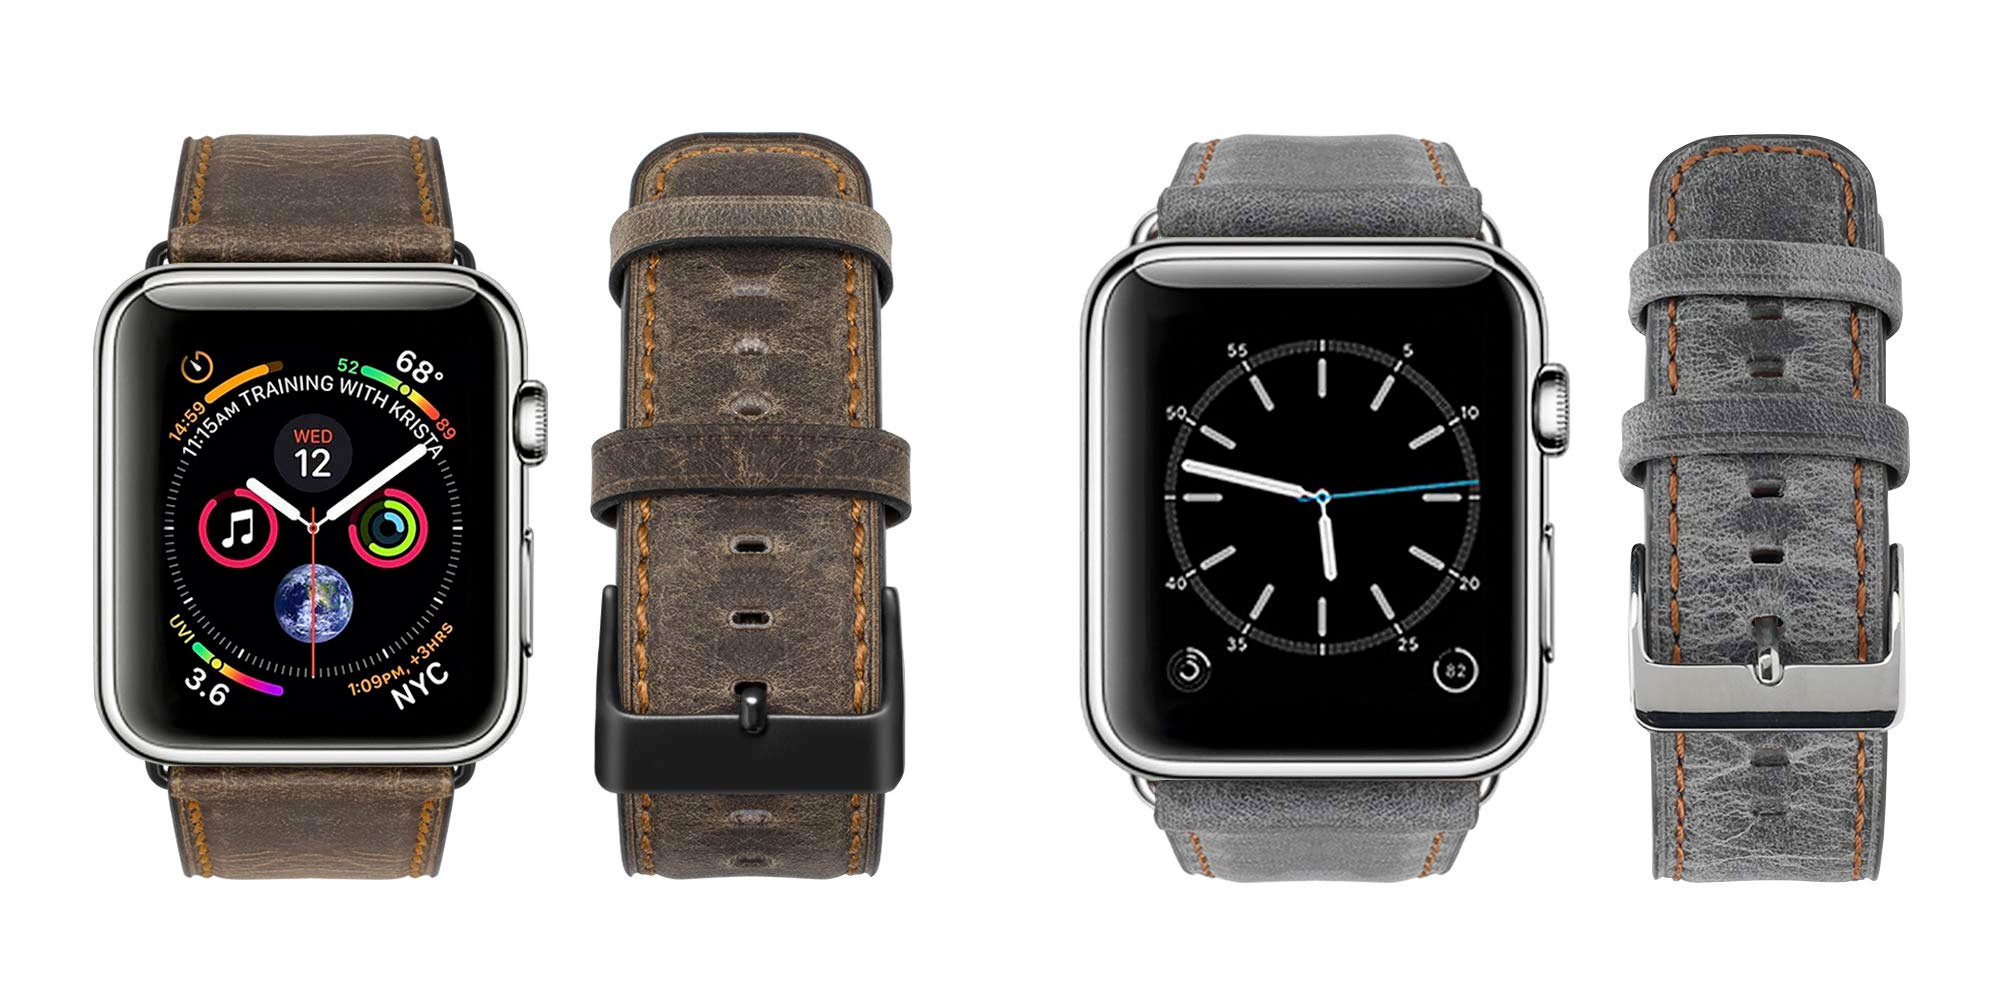 Save 50% on an Apple Watch leather band & expand your collection for $7 Prime shipped